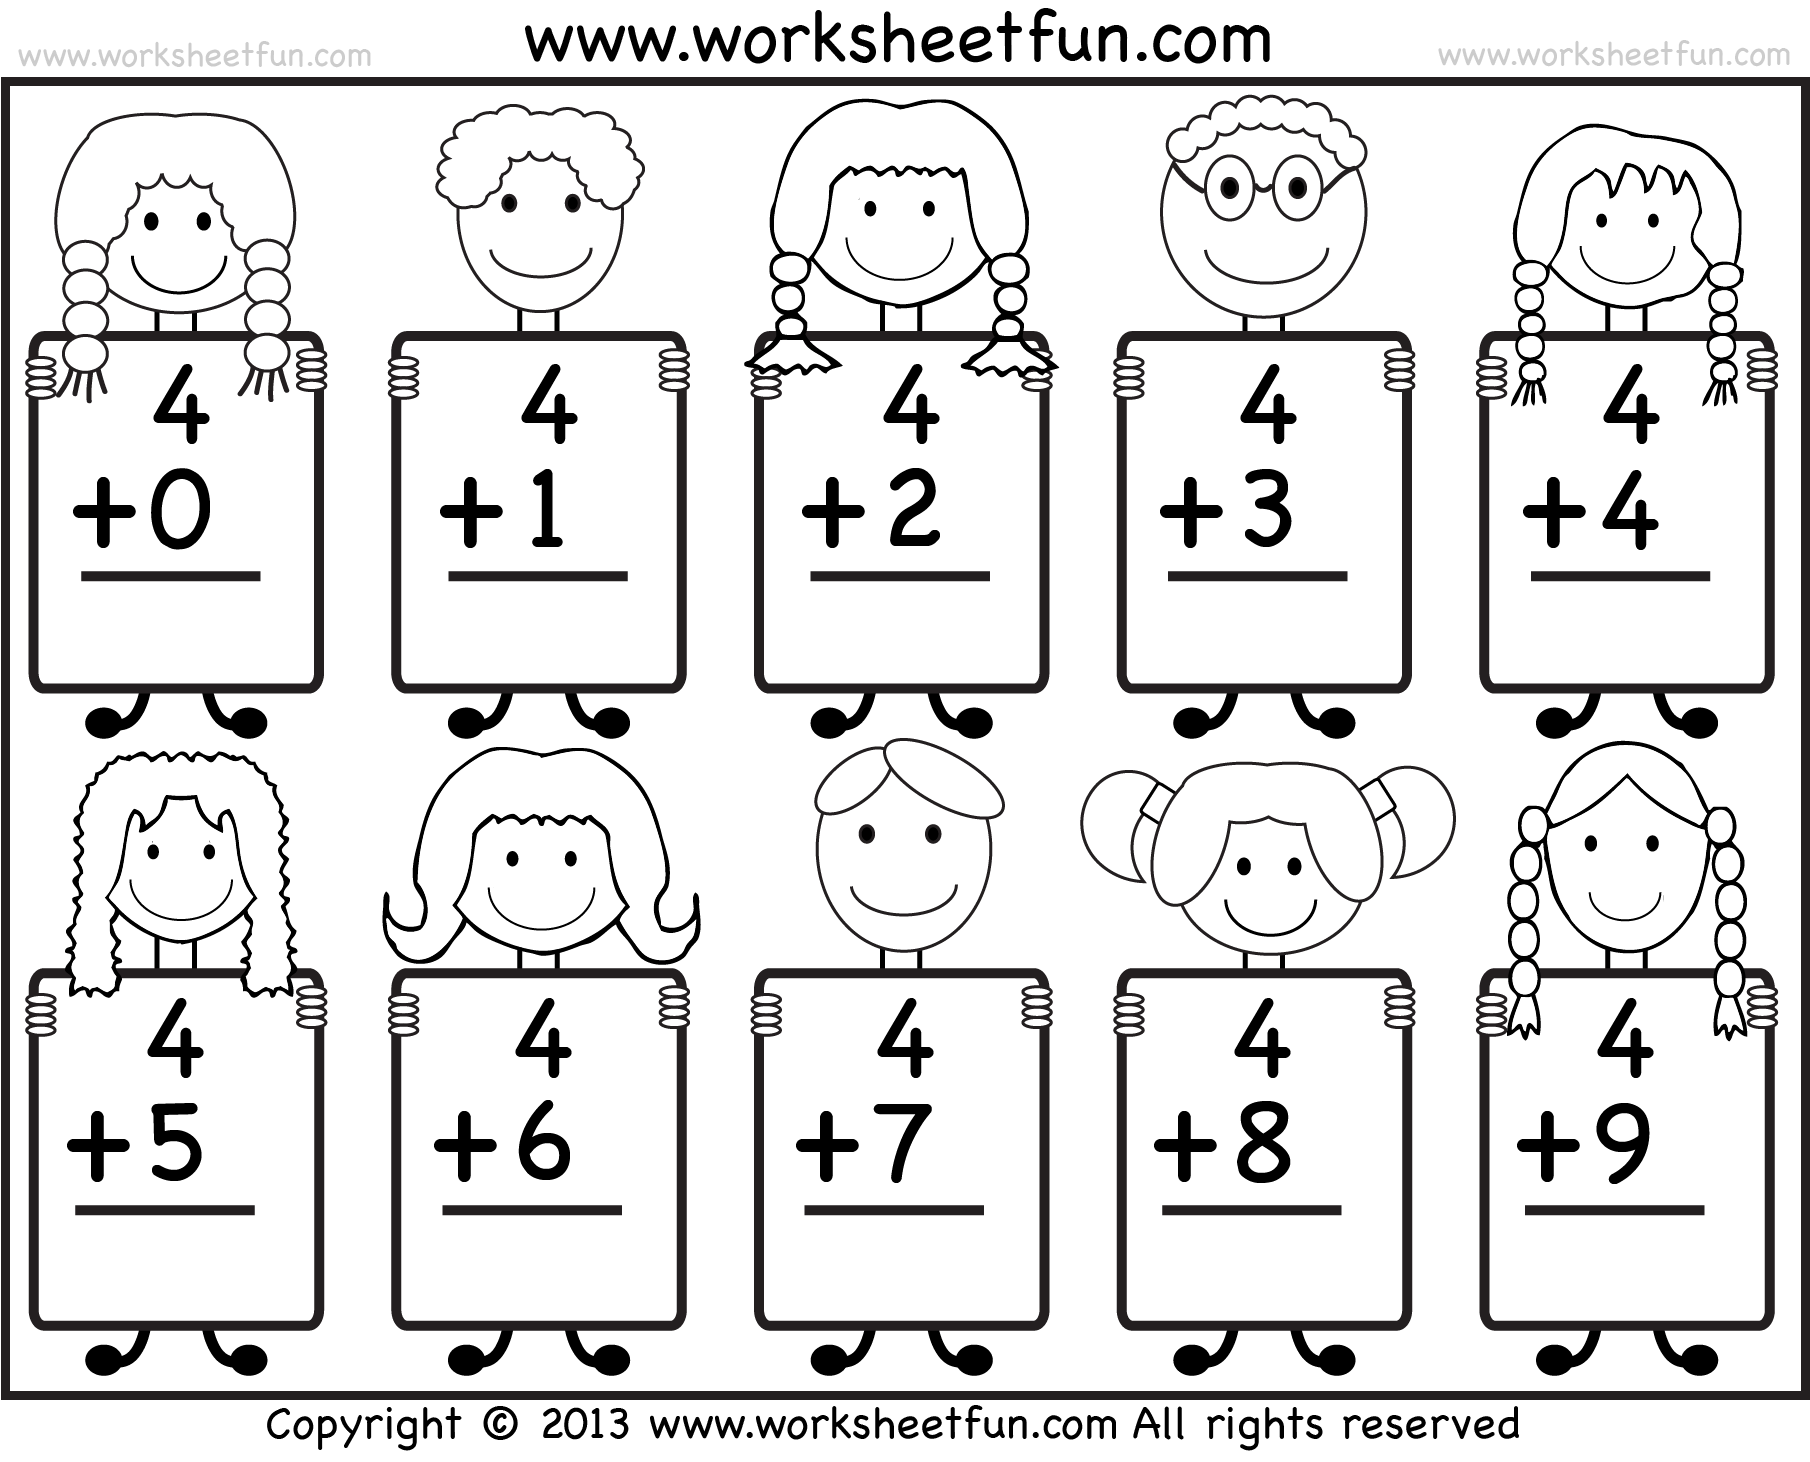 Worksheet Kindergarten Math Work Sheets free printable senior kindergarten math worksheets maths to print sheets math